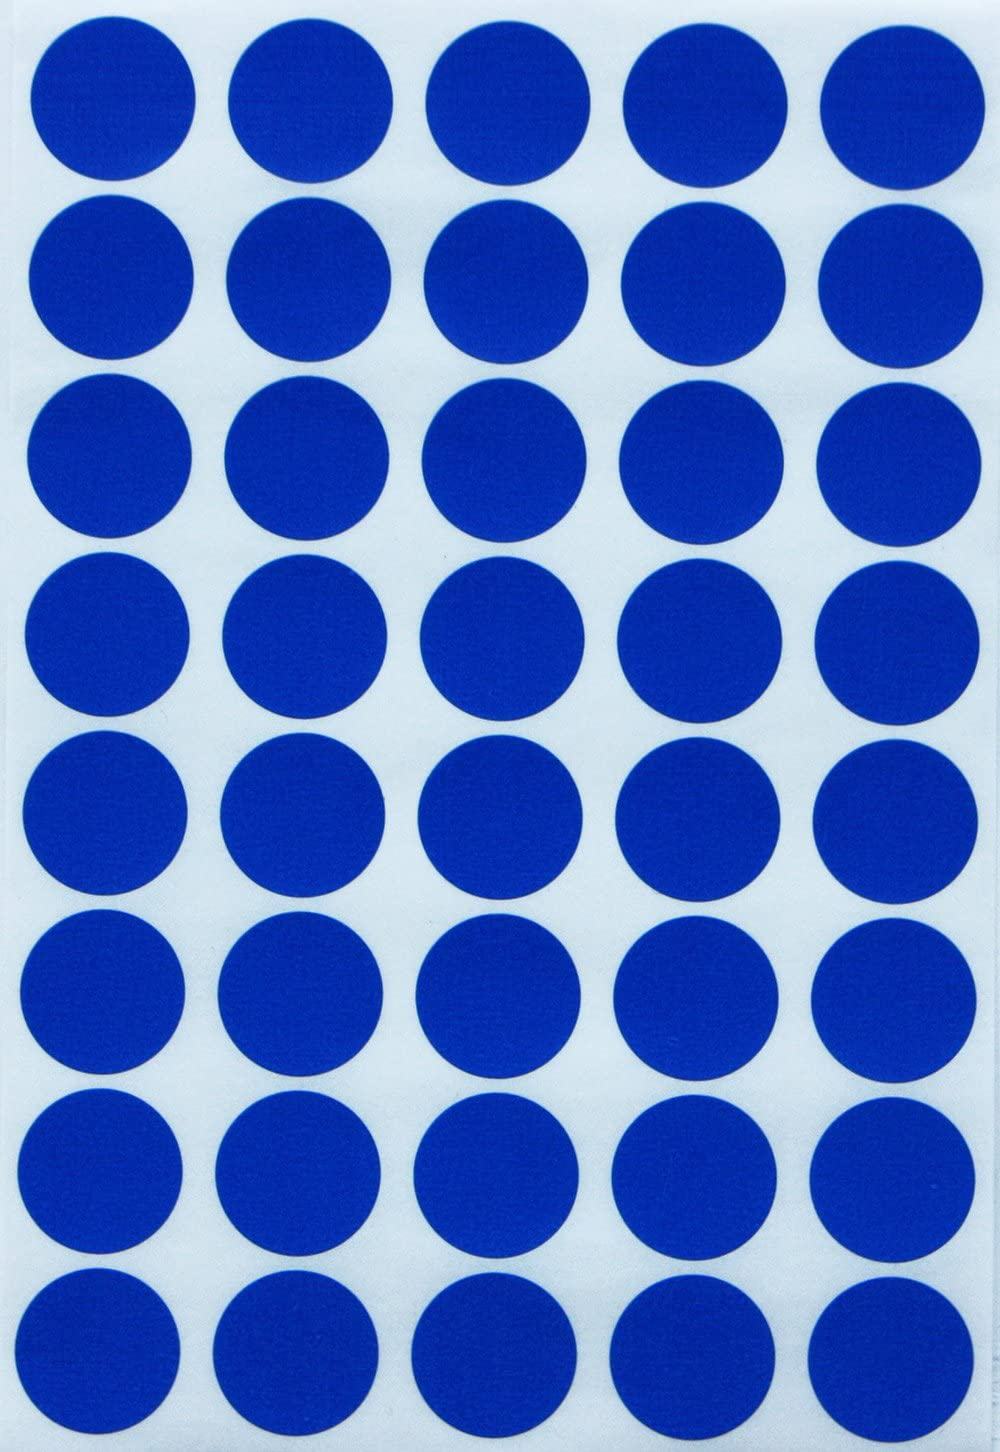 Royal Green Dot Sticker Colored Labels - Round Stickers in Blue 19mm ¾ inch - 1000 Pack